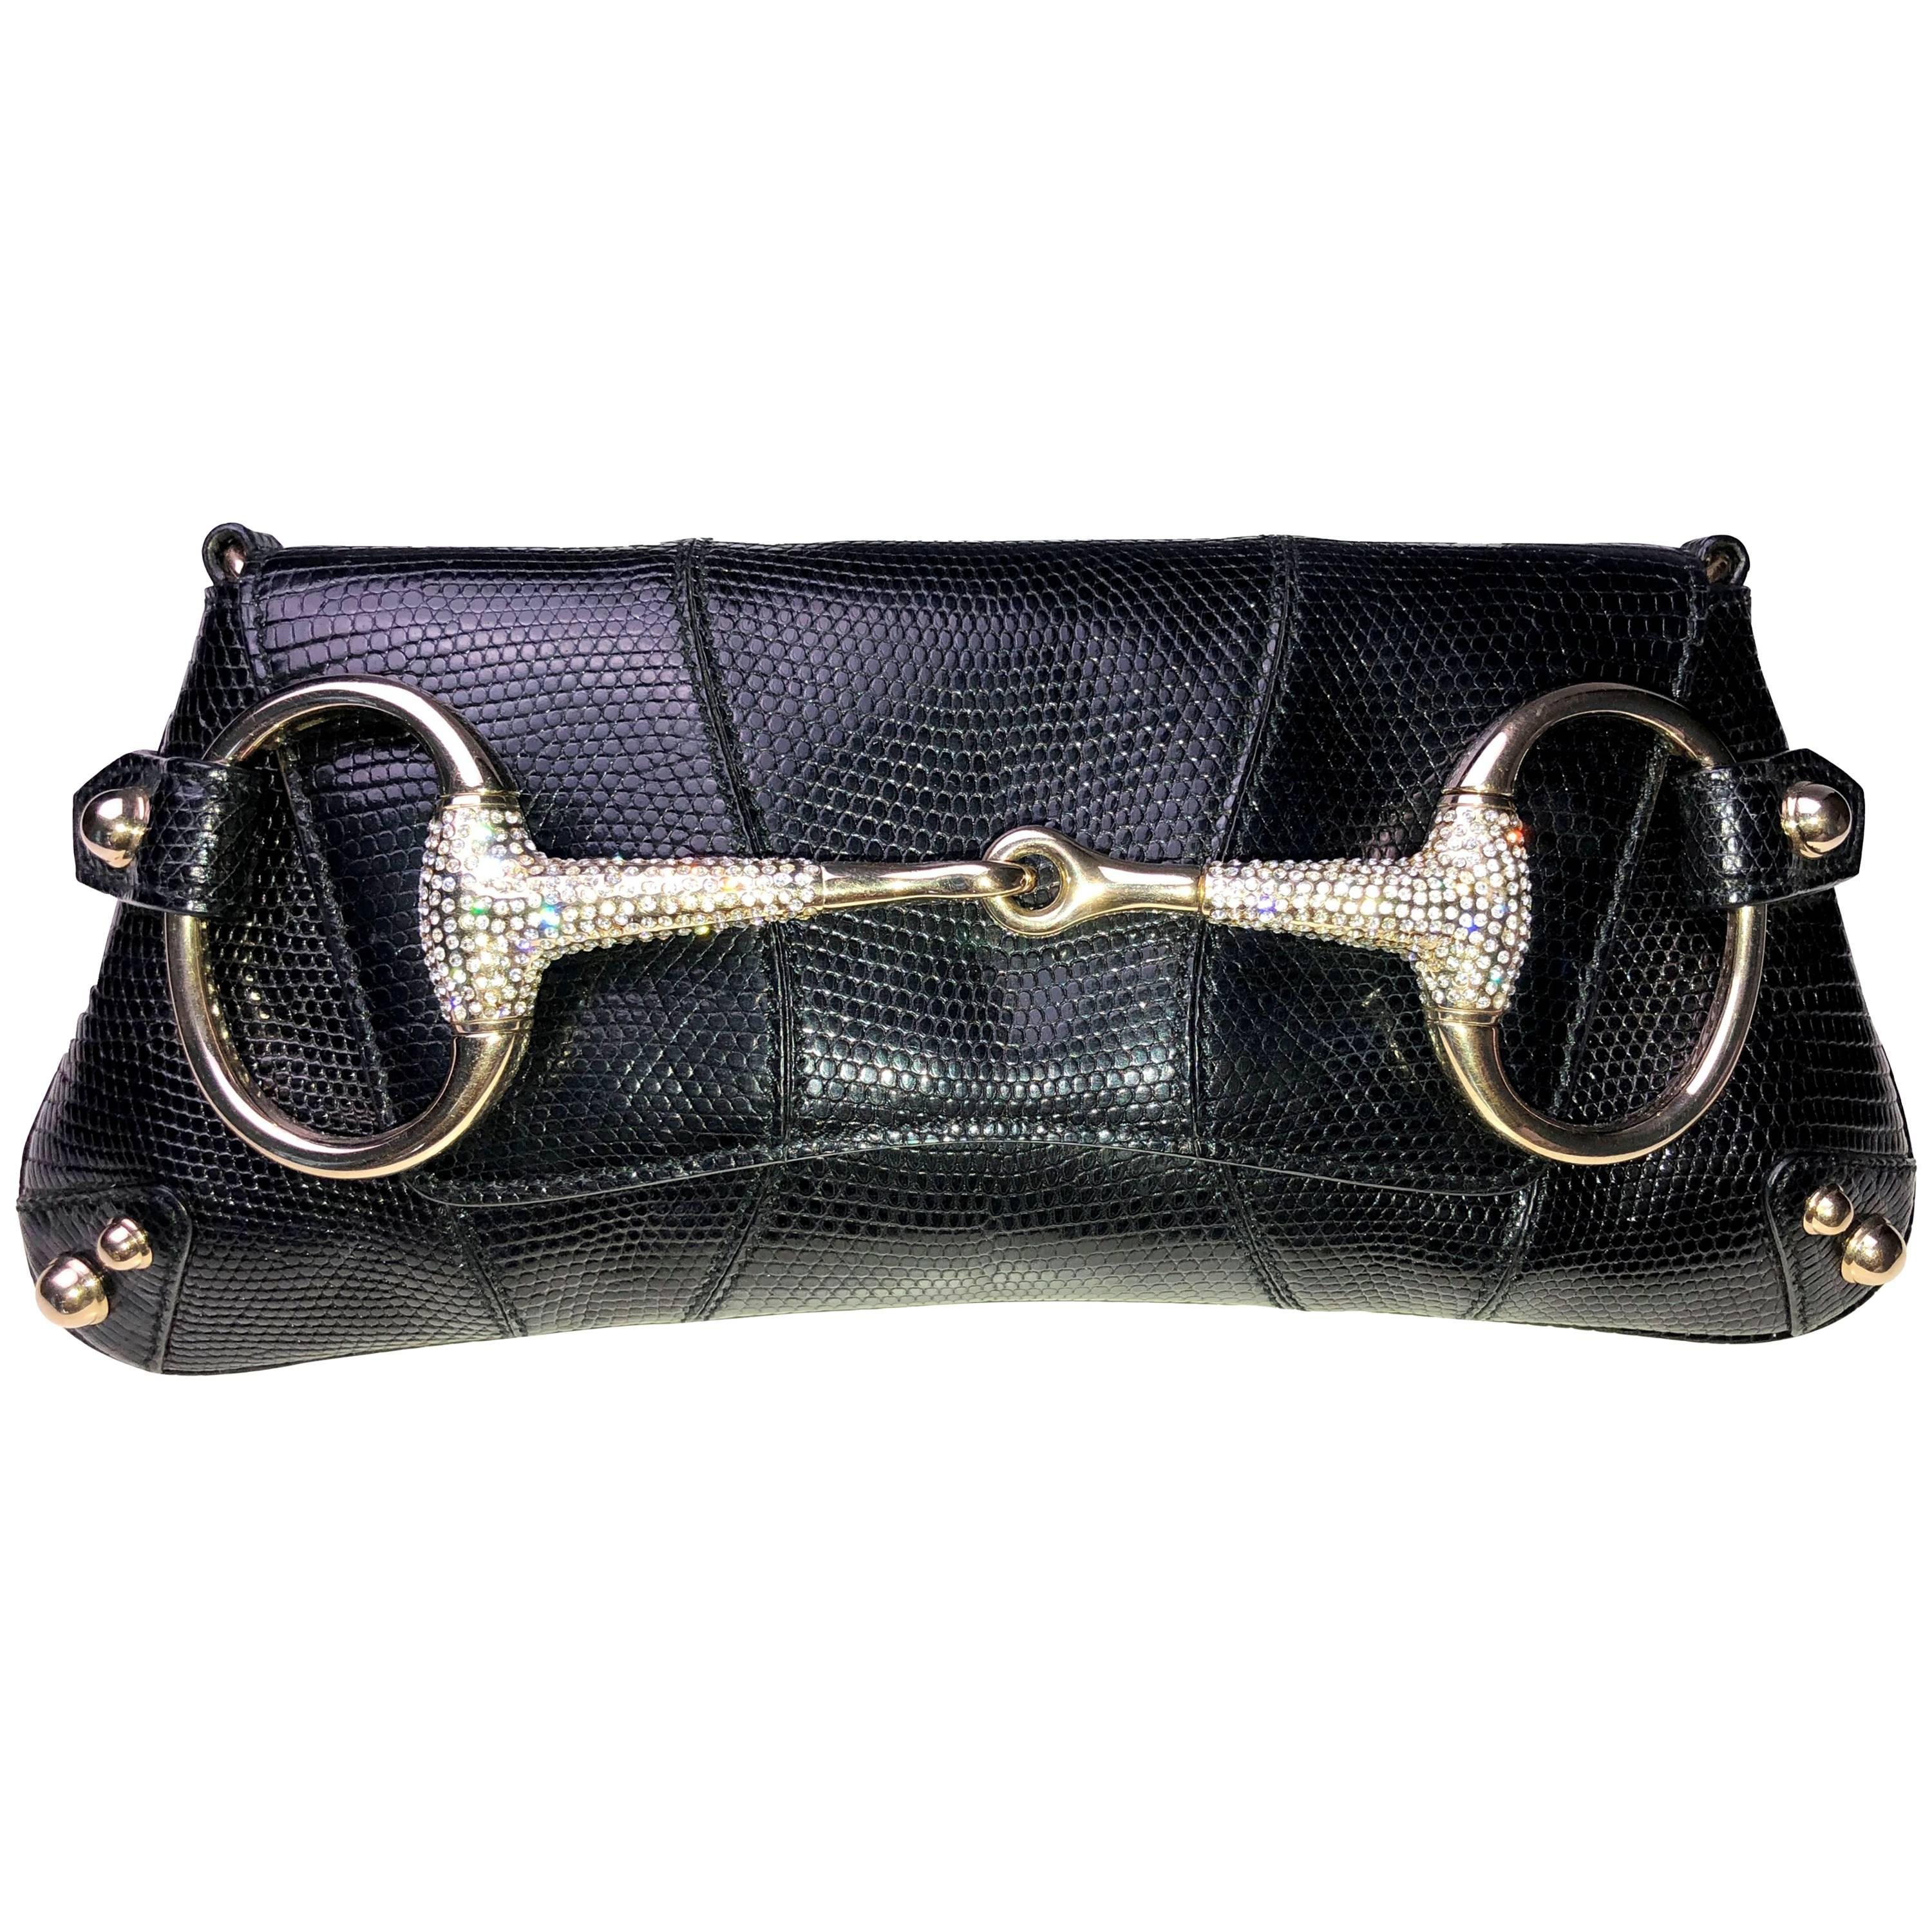 c39d7a96fa0a Amazing Exotic Black Gucci Lizard Skin Crystallized Horsebit Bamboo Clutch  Bag For Sale at 1stdibs